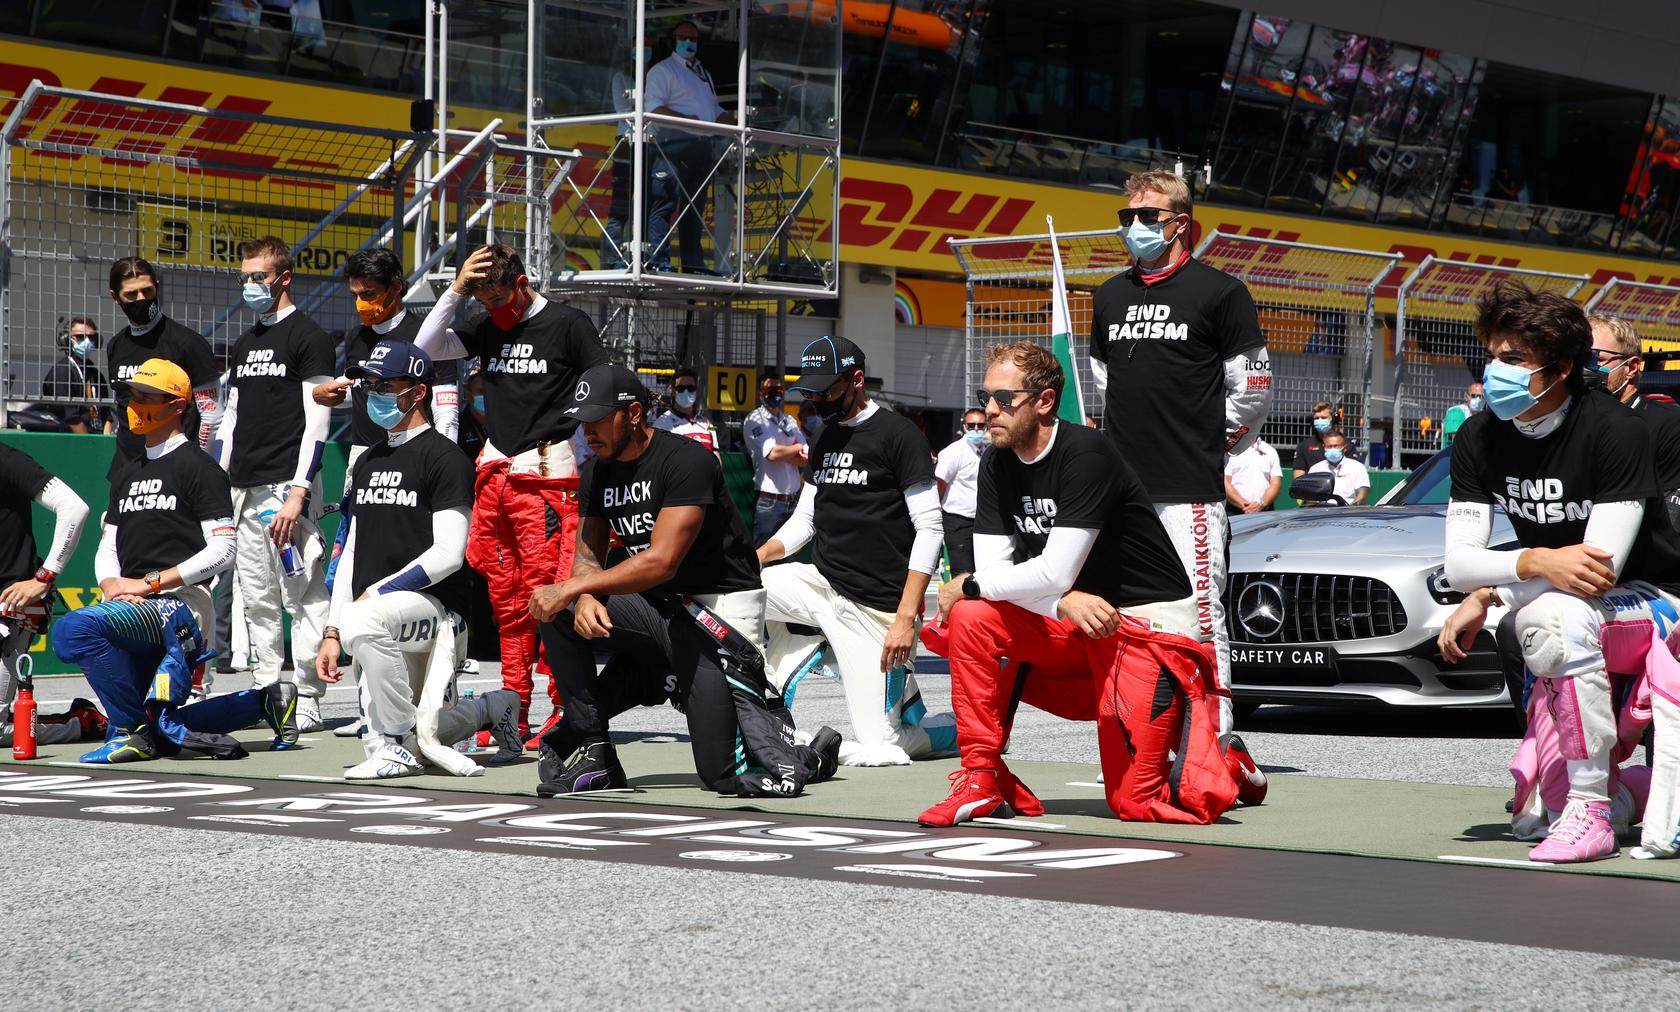 Lewis Hamilton Leads 14 Formula One Drivers to Take a Knee Against Racism Before Austrian Grand Prix